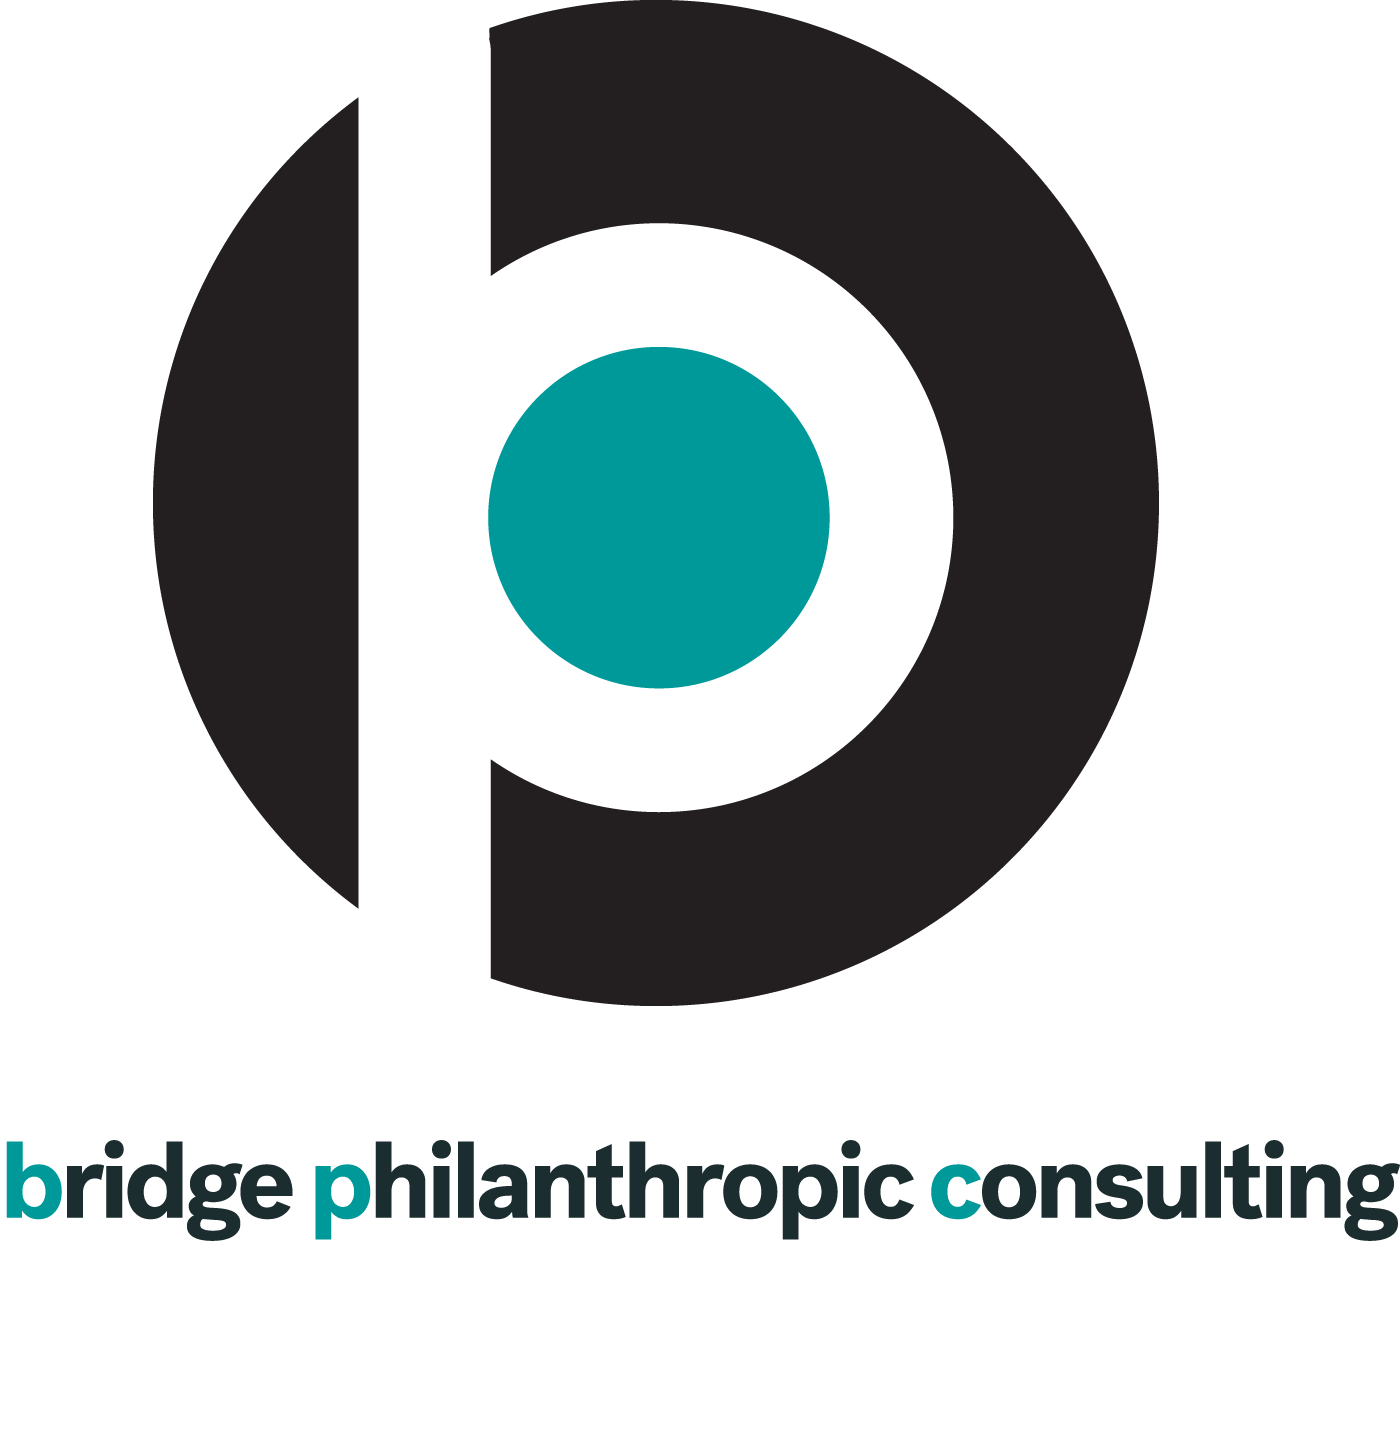 Bridge Philanthropic Consulting©